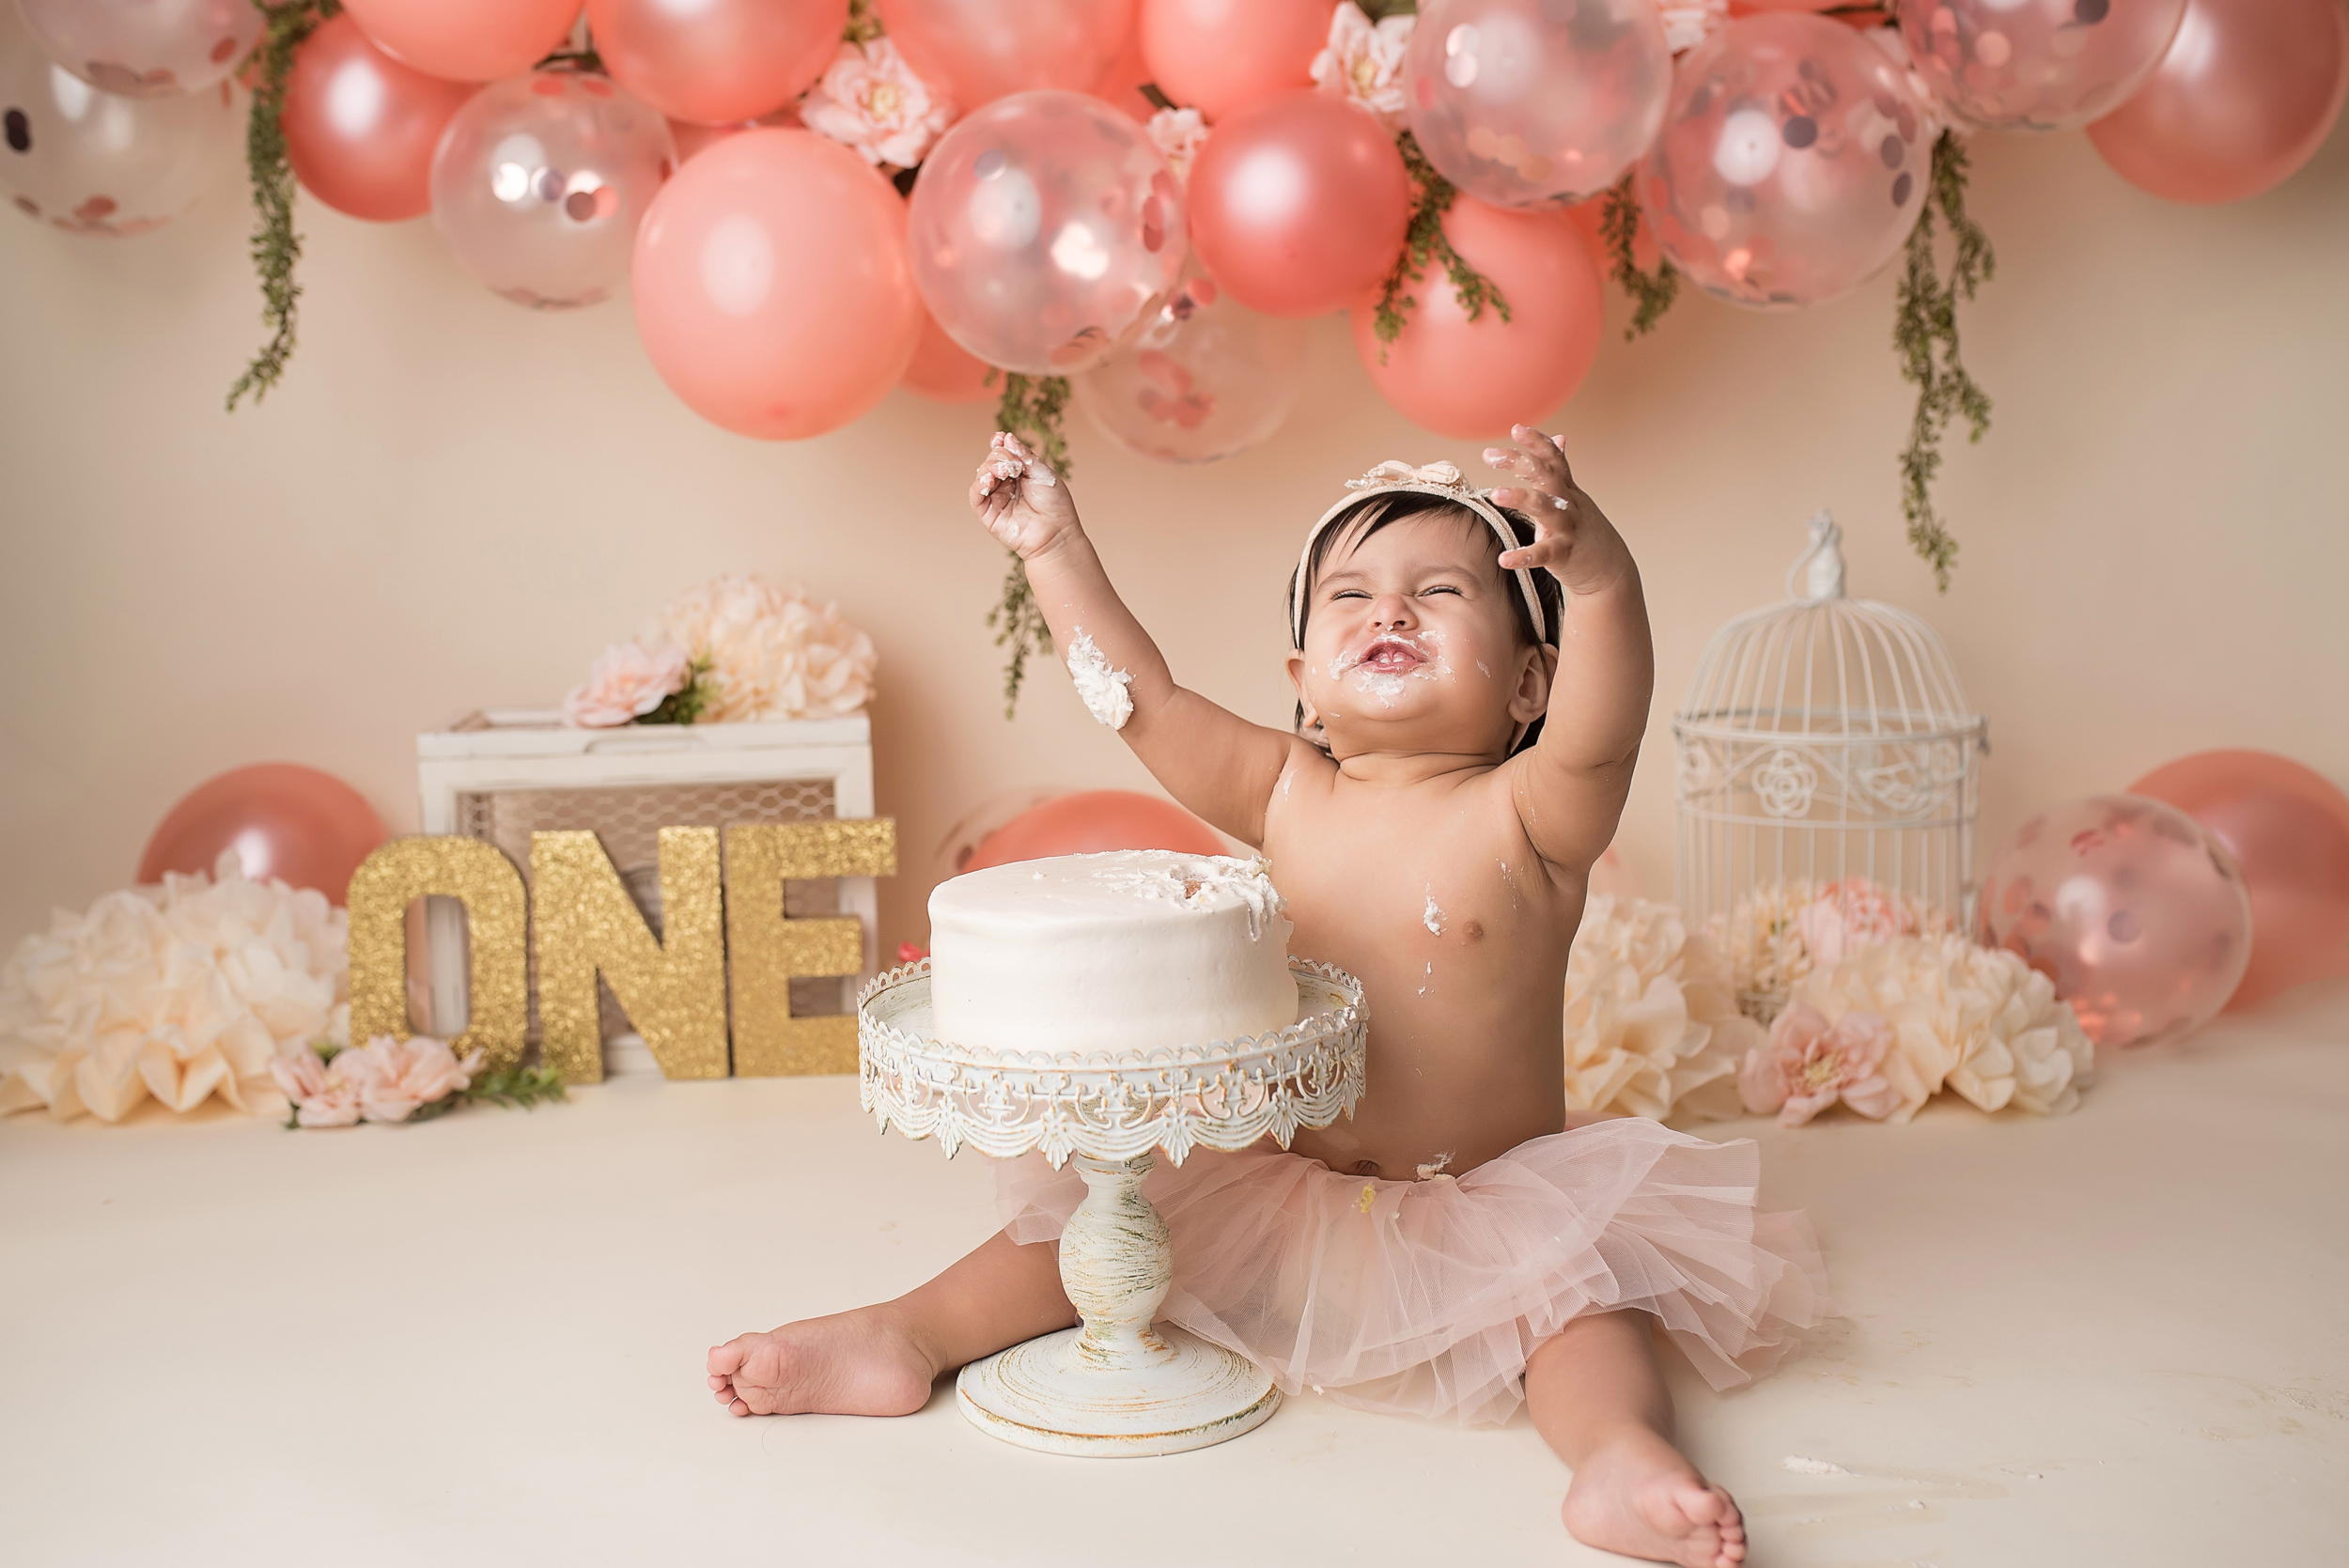 cake-smash-lake-worth-wellington-tequesta-jupiter-palm-beach-boynton-beach-delray-beach-boca-raton-parkland-one-year-captured-moments-by-dawn-photographer-photography.jpg